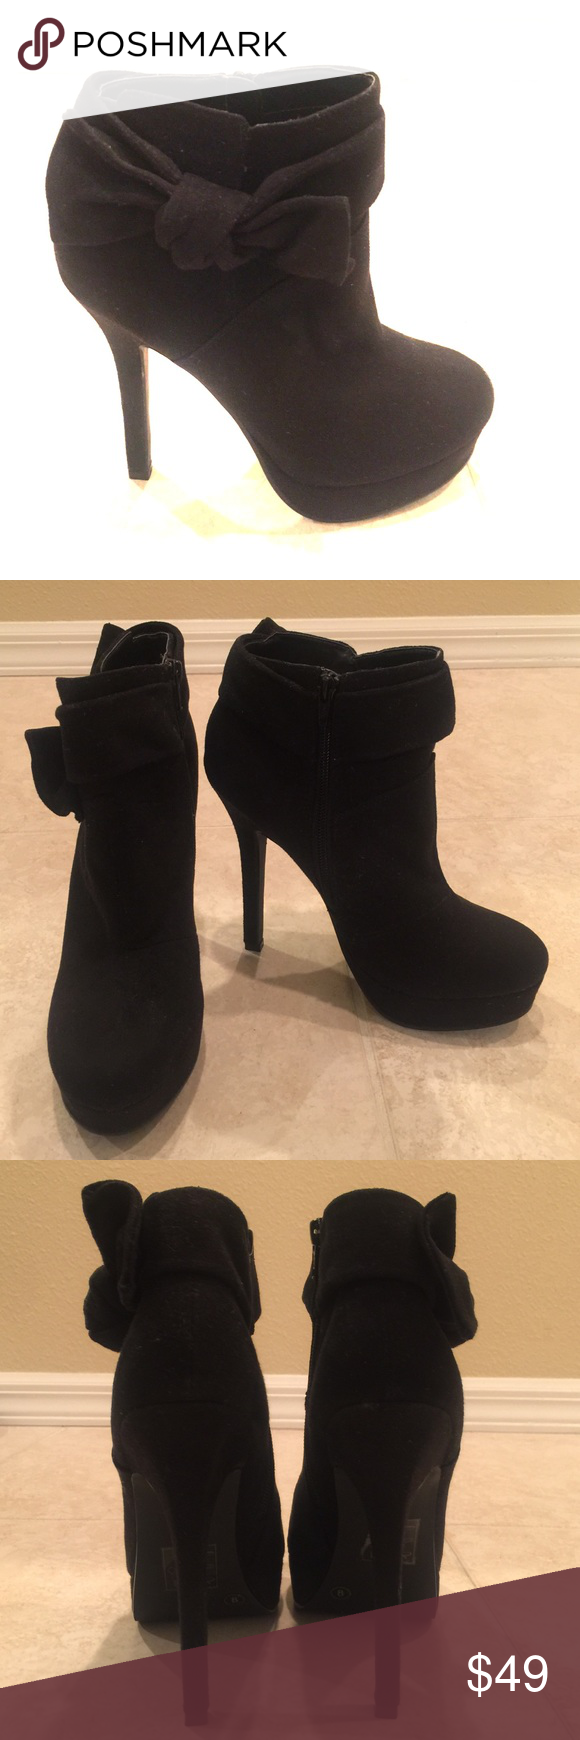 """🆕Call It Spring Ankle Boots🎀 Black suede ankle boots with bows on the outer sides and inner side zippers. Heel hight is approximately 5.25"""". Brand new, never worn! Call It Spring Shoes Ankle Boots & Booties"""